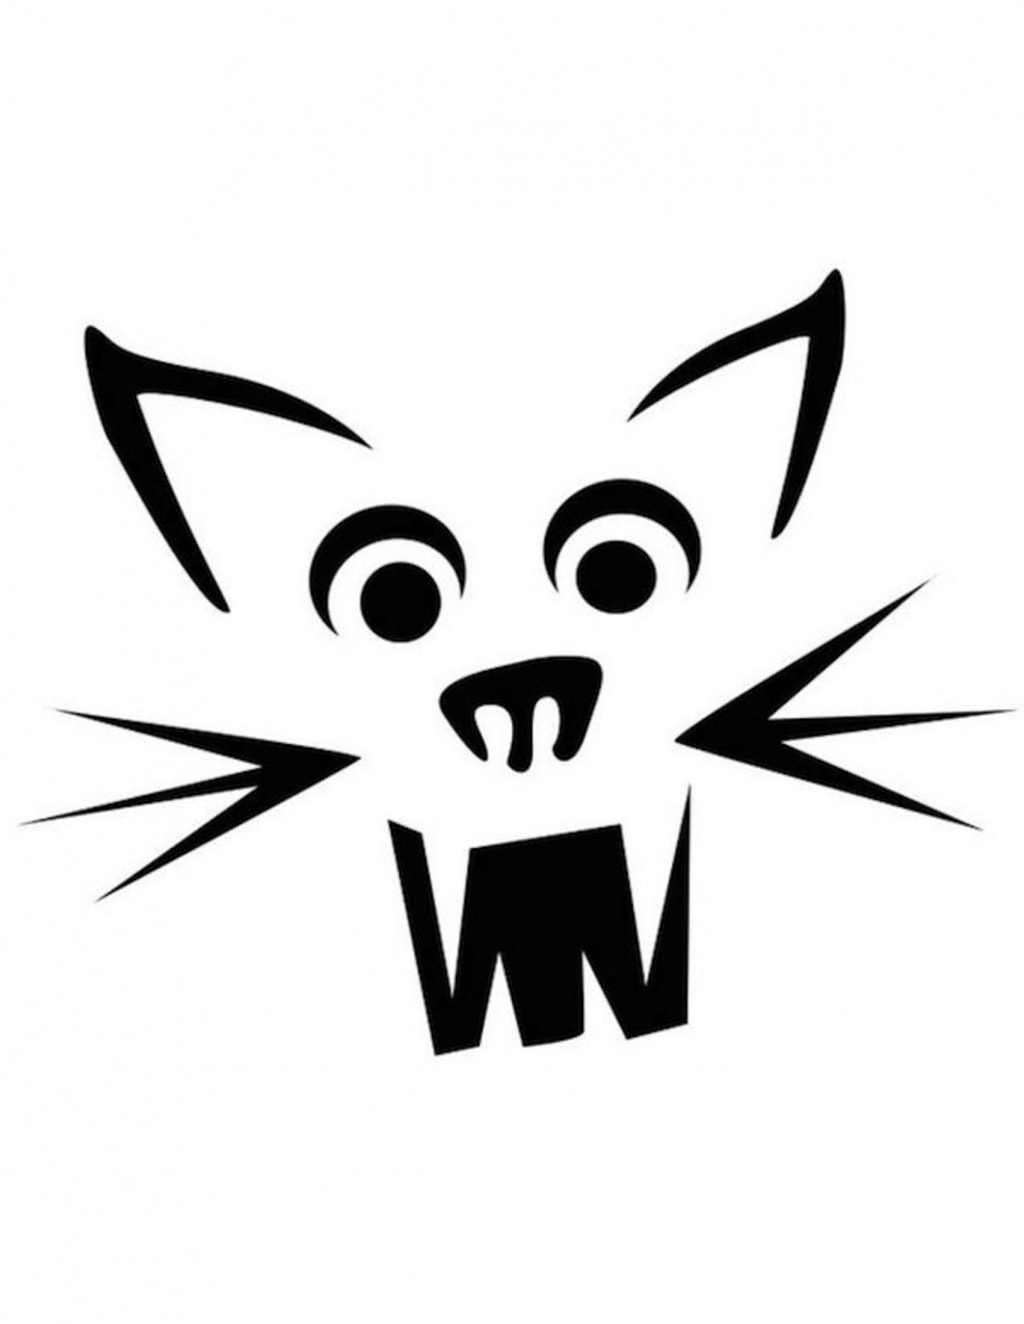 Get Cat Face Pumpkin Carving Pattern Stencil Template Designs